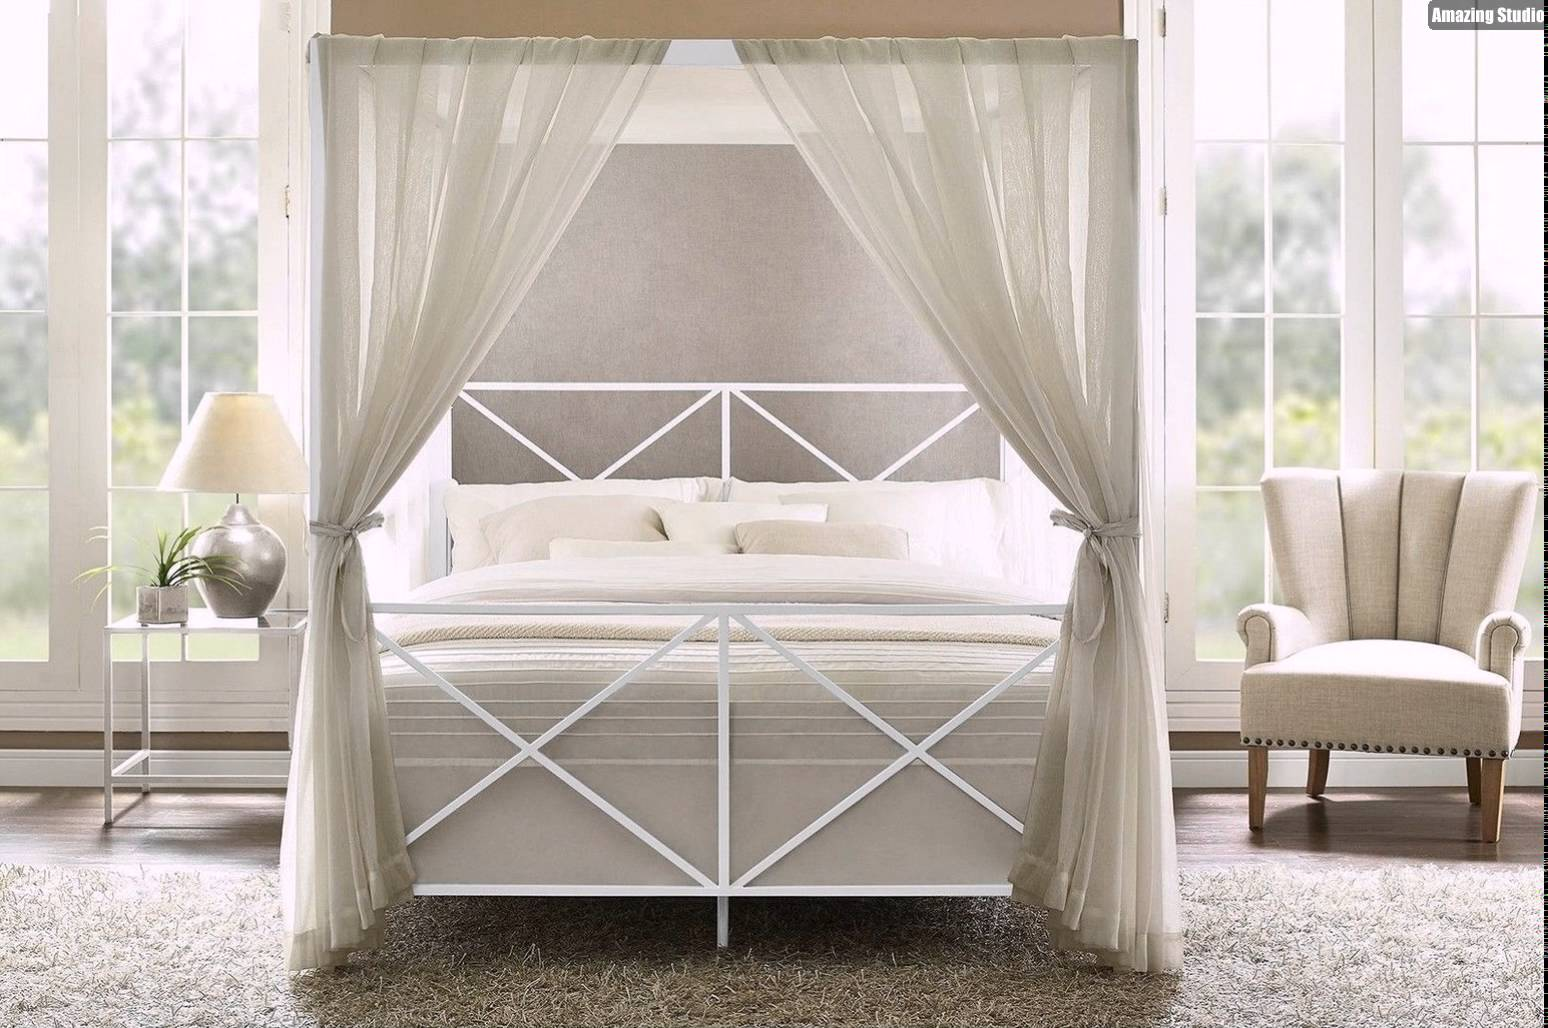 Merveilleux Elegant DIY Canopy Bed For Gorgeous Bedroom With Grey Sheer Curtain Beside  Cozy Wingchair